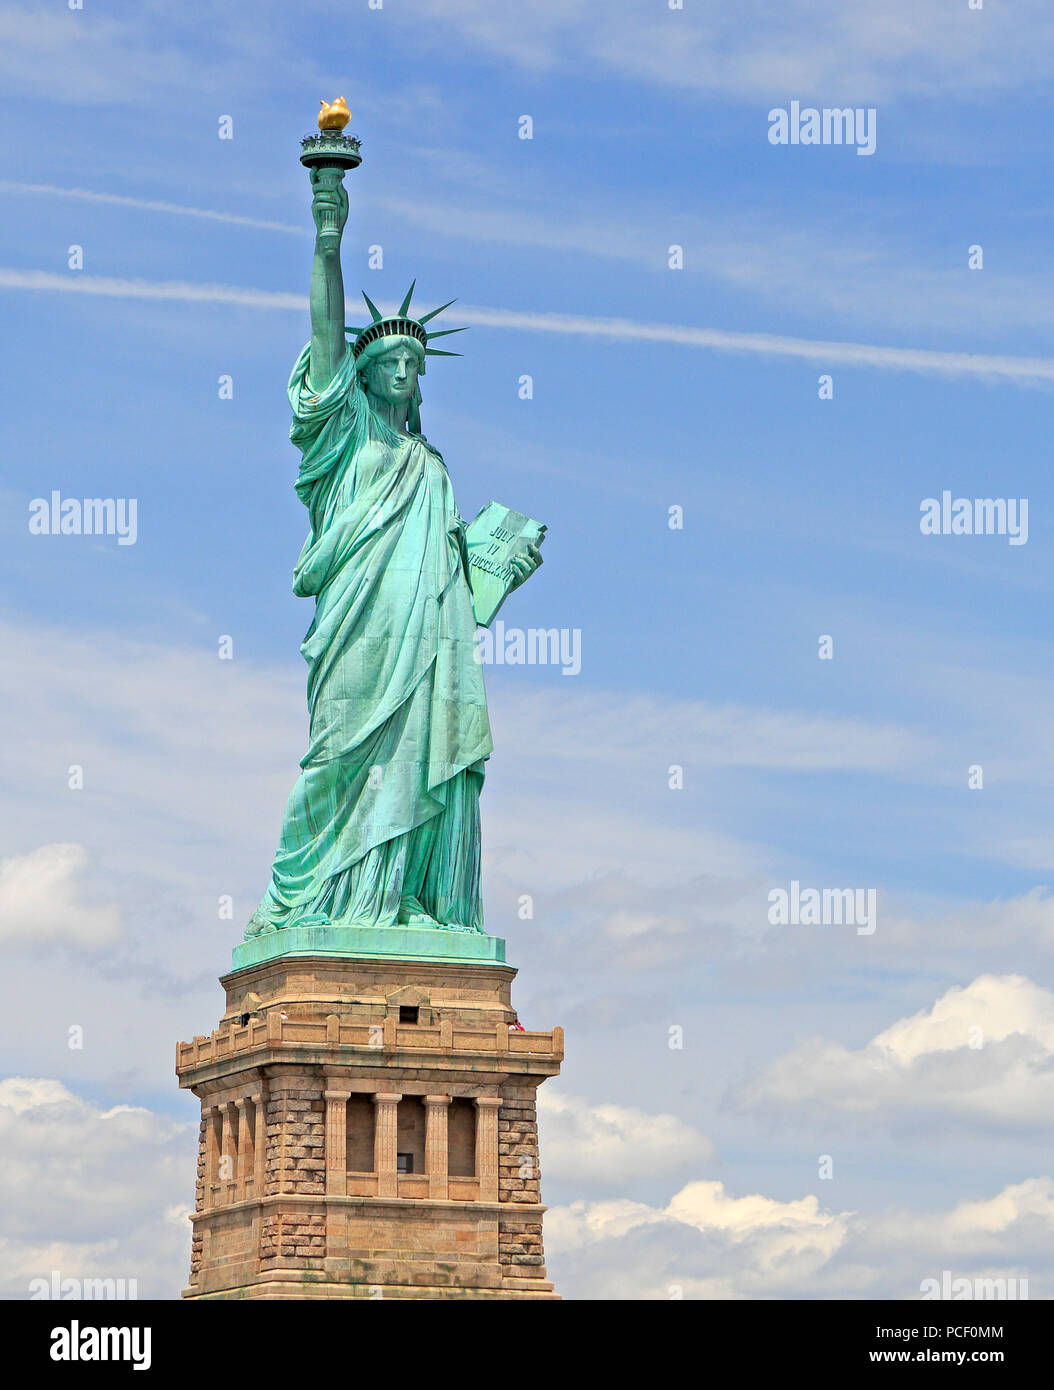 Statue of Liberty, New York City, USA - Stock Image